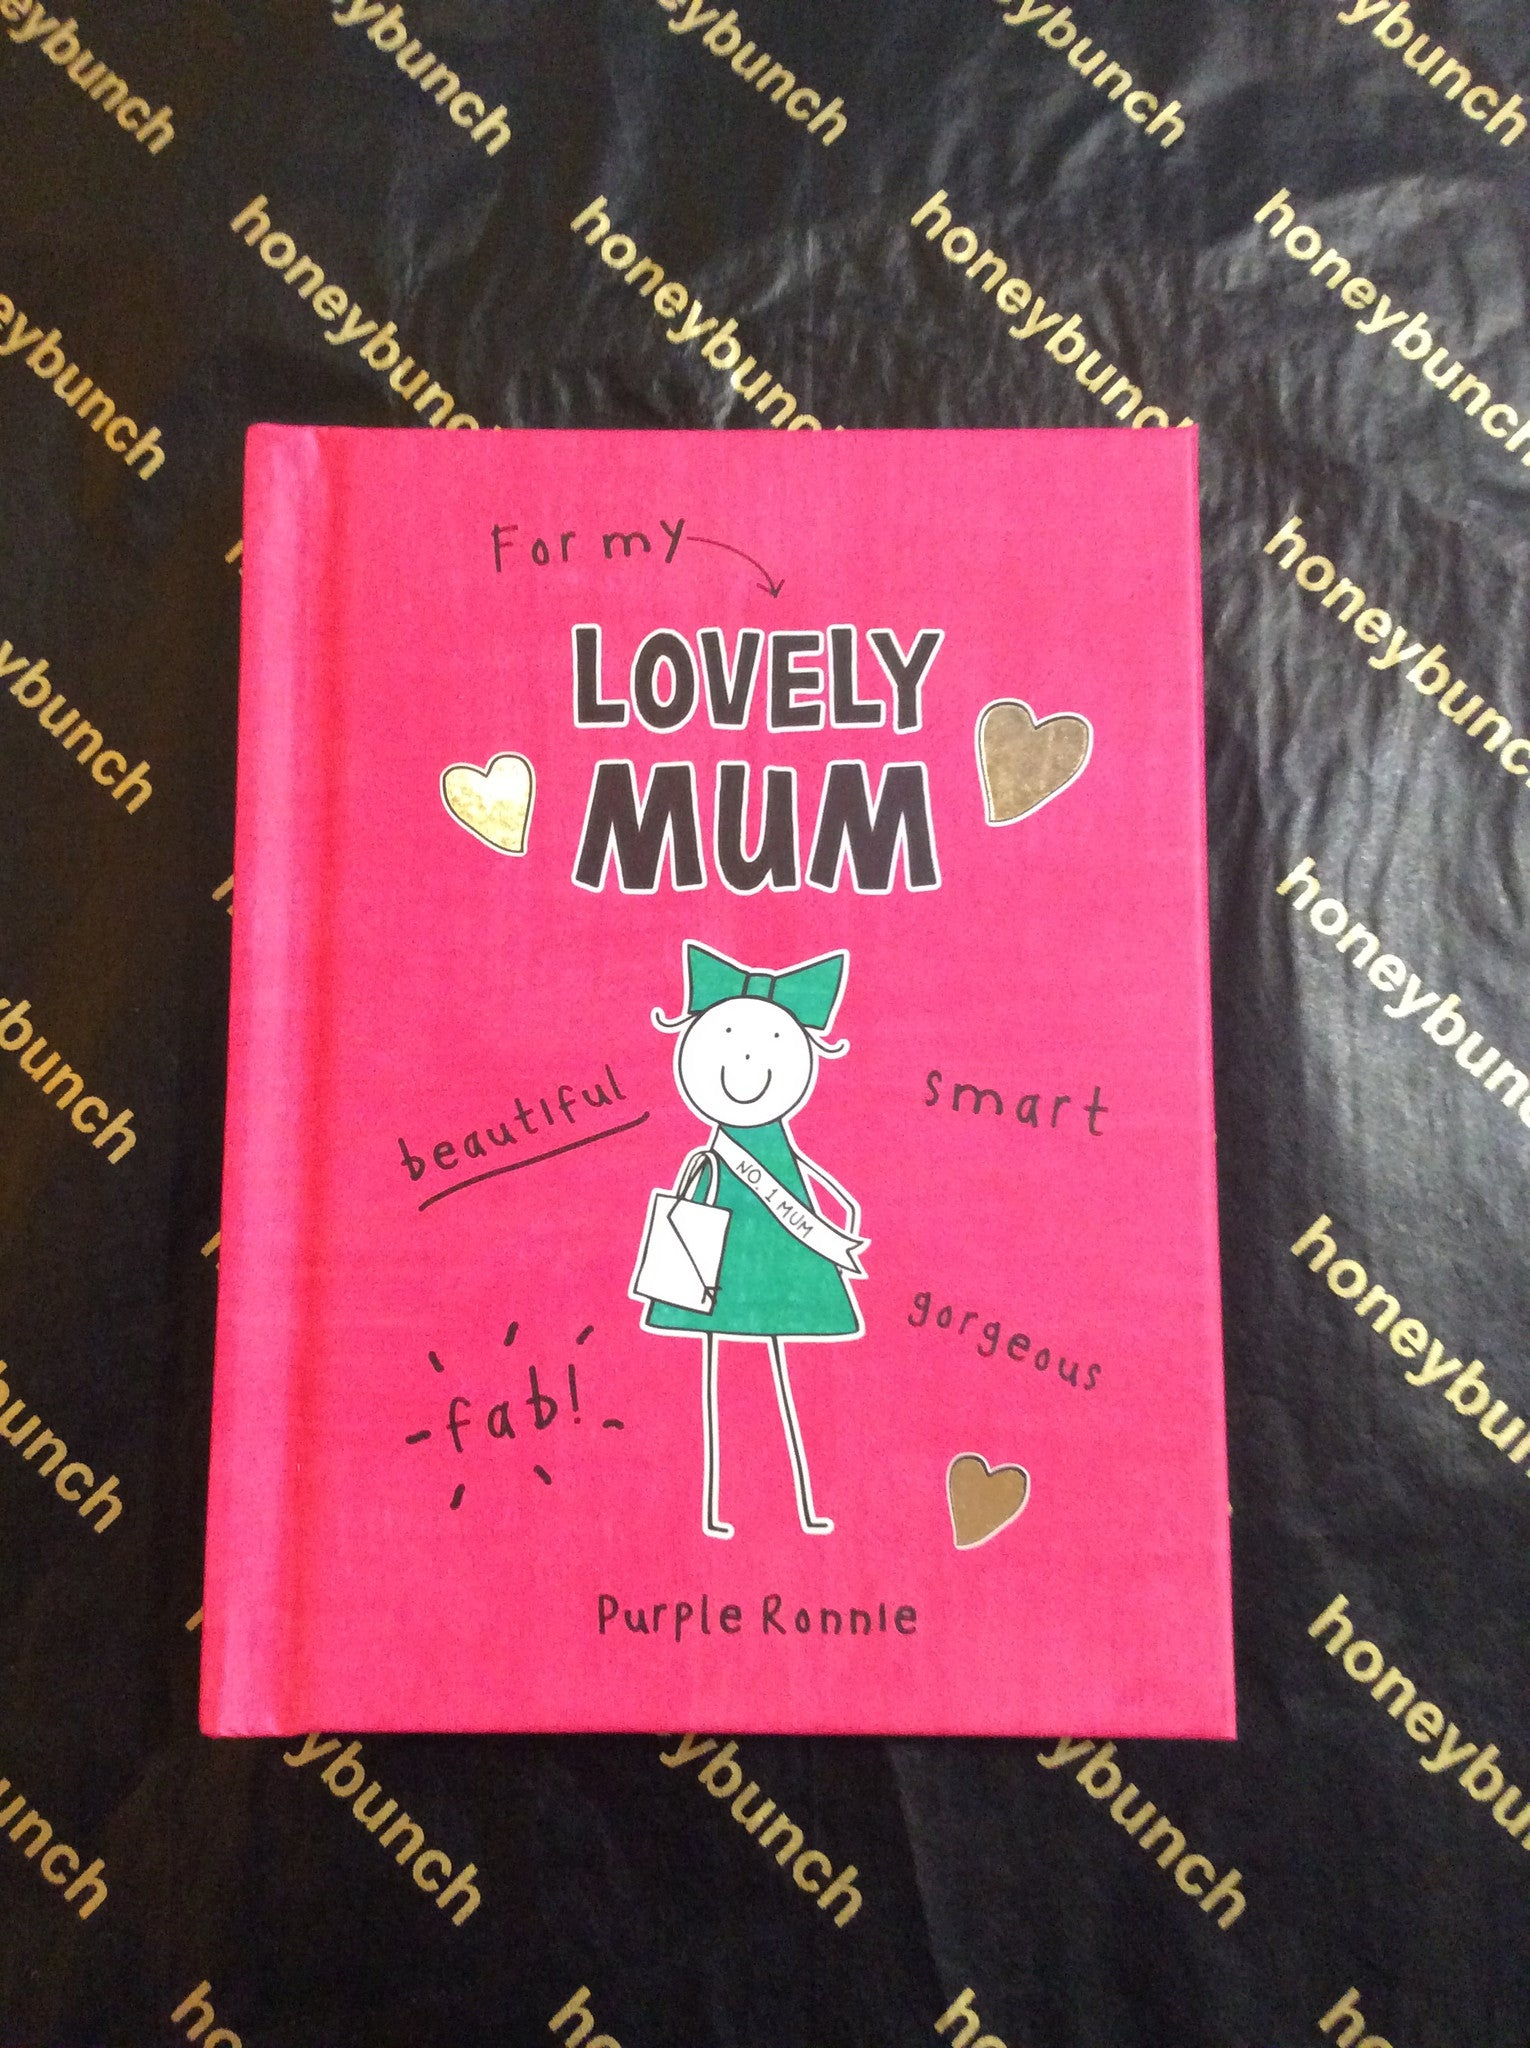 For my lovely mum book